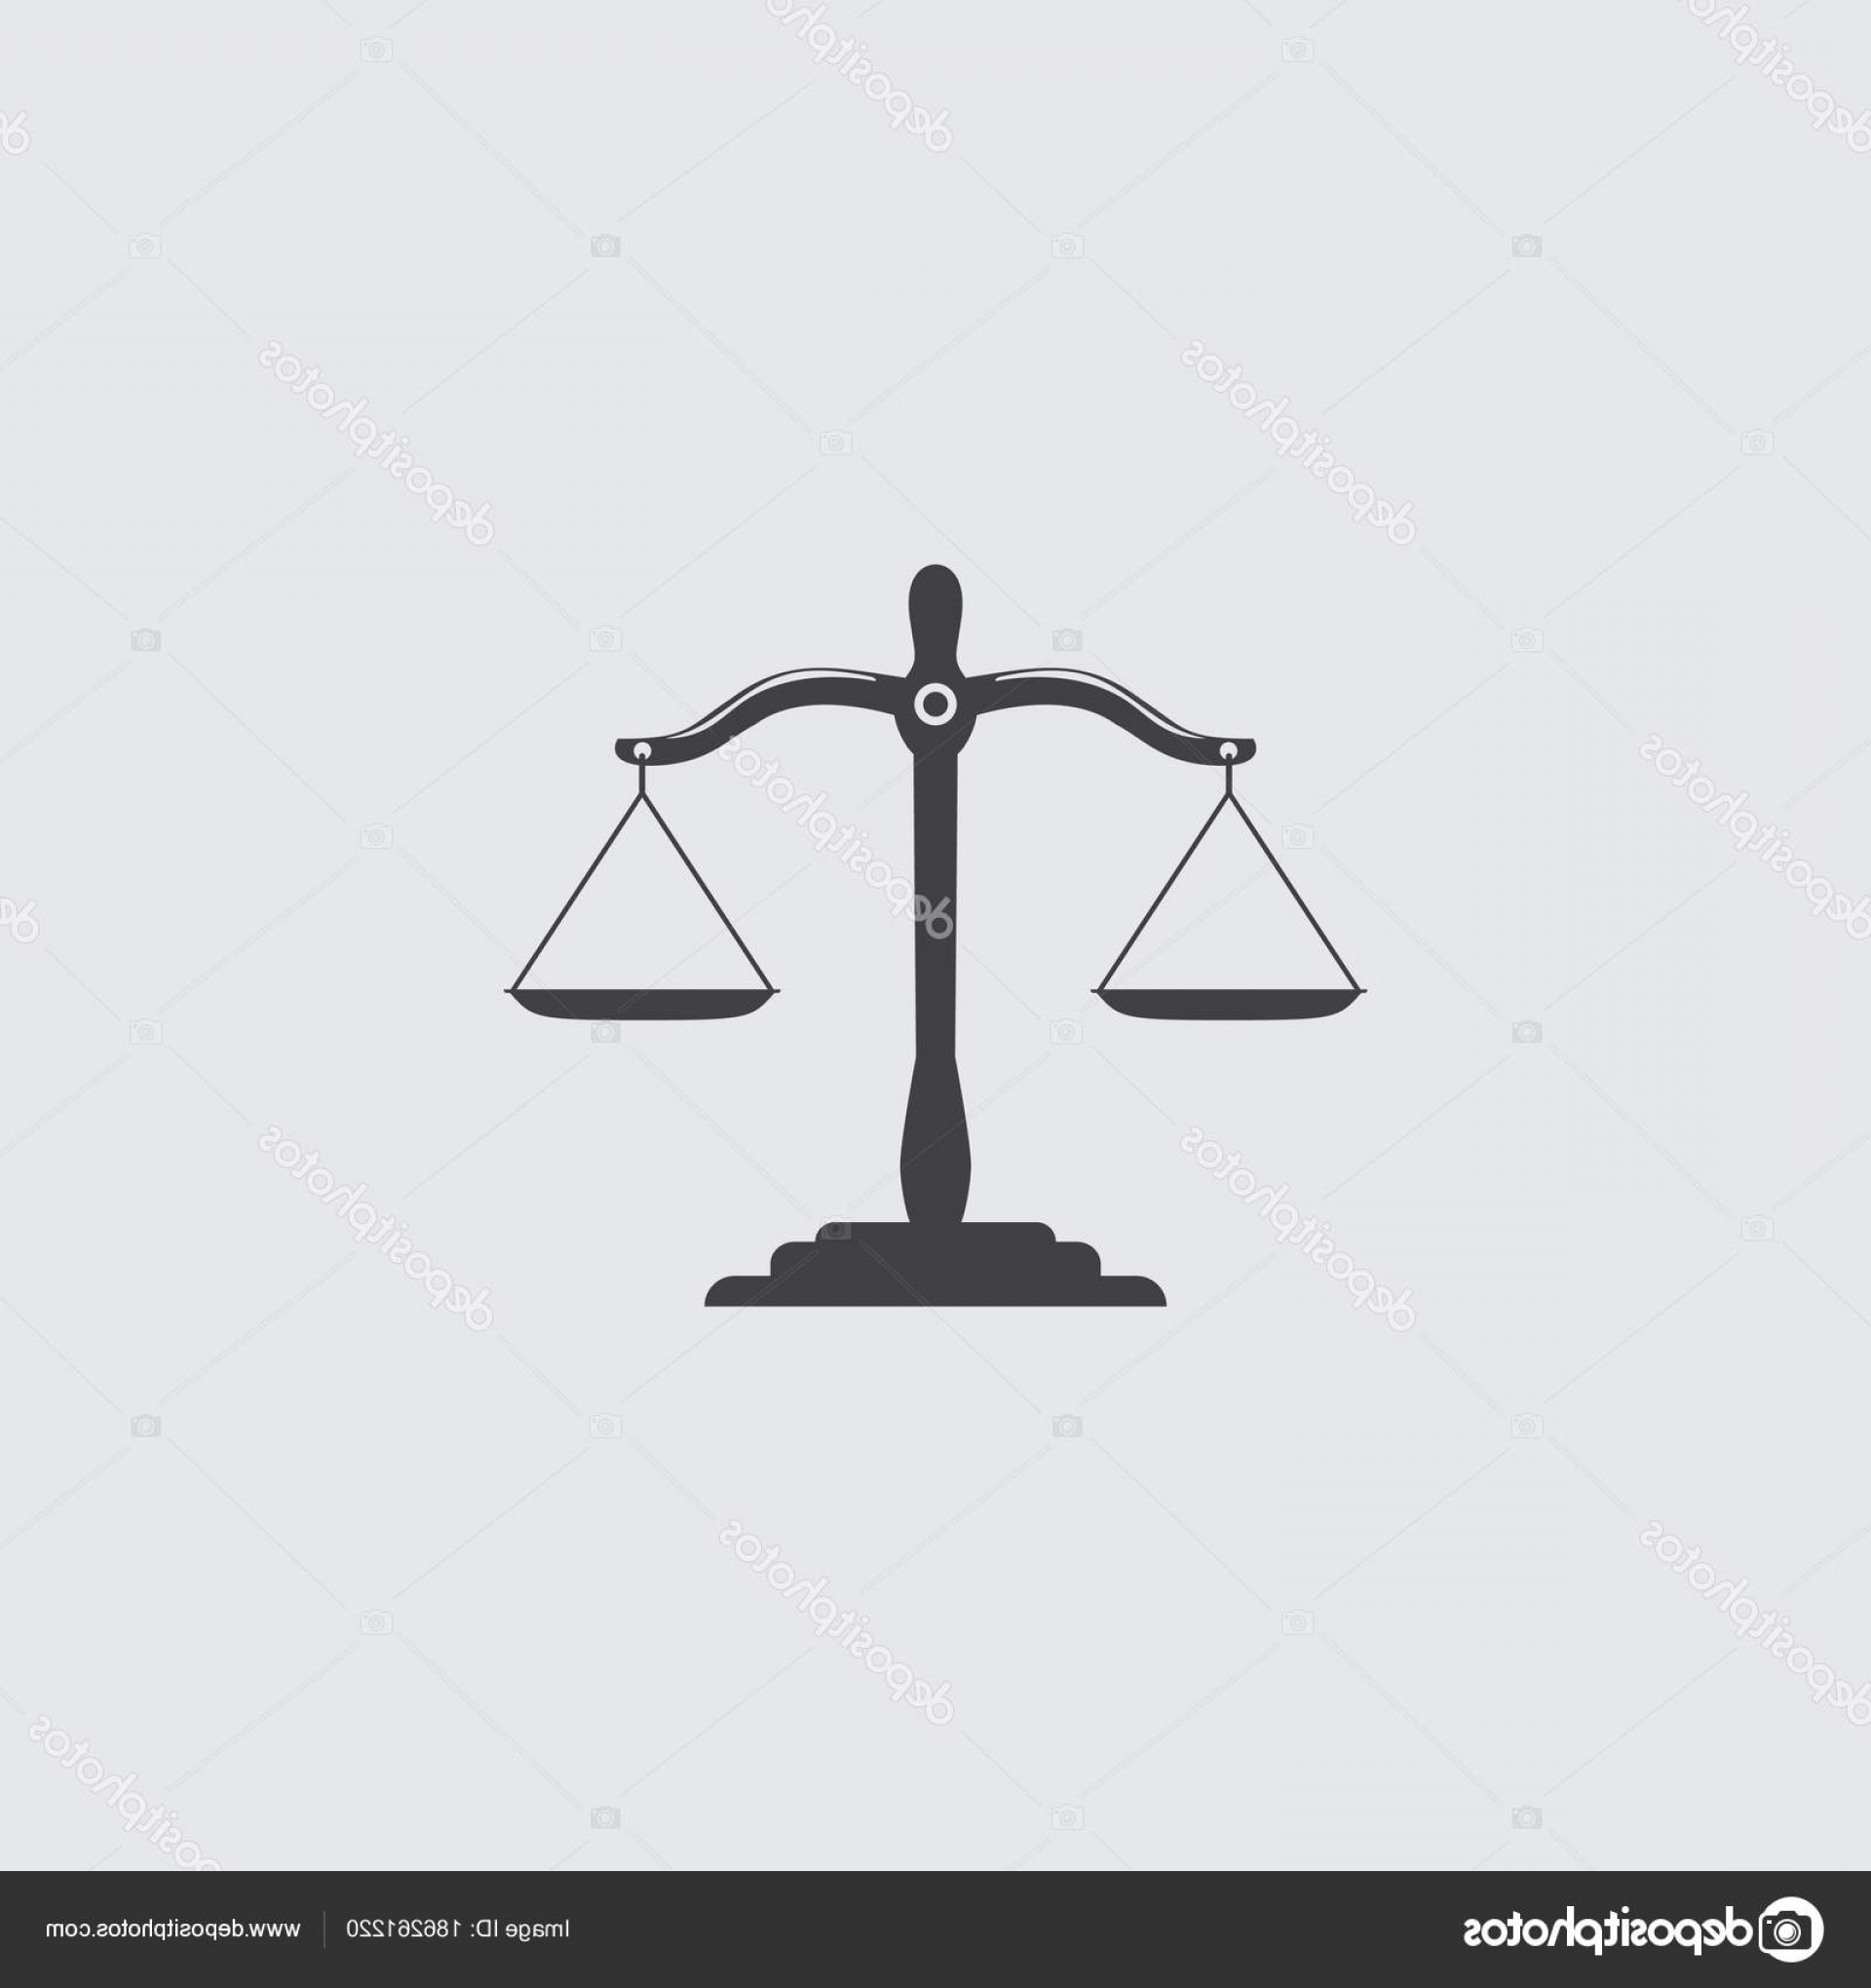 Lawyer Scale Vector: Stock Illustration Black Justice Scales Icon Law